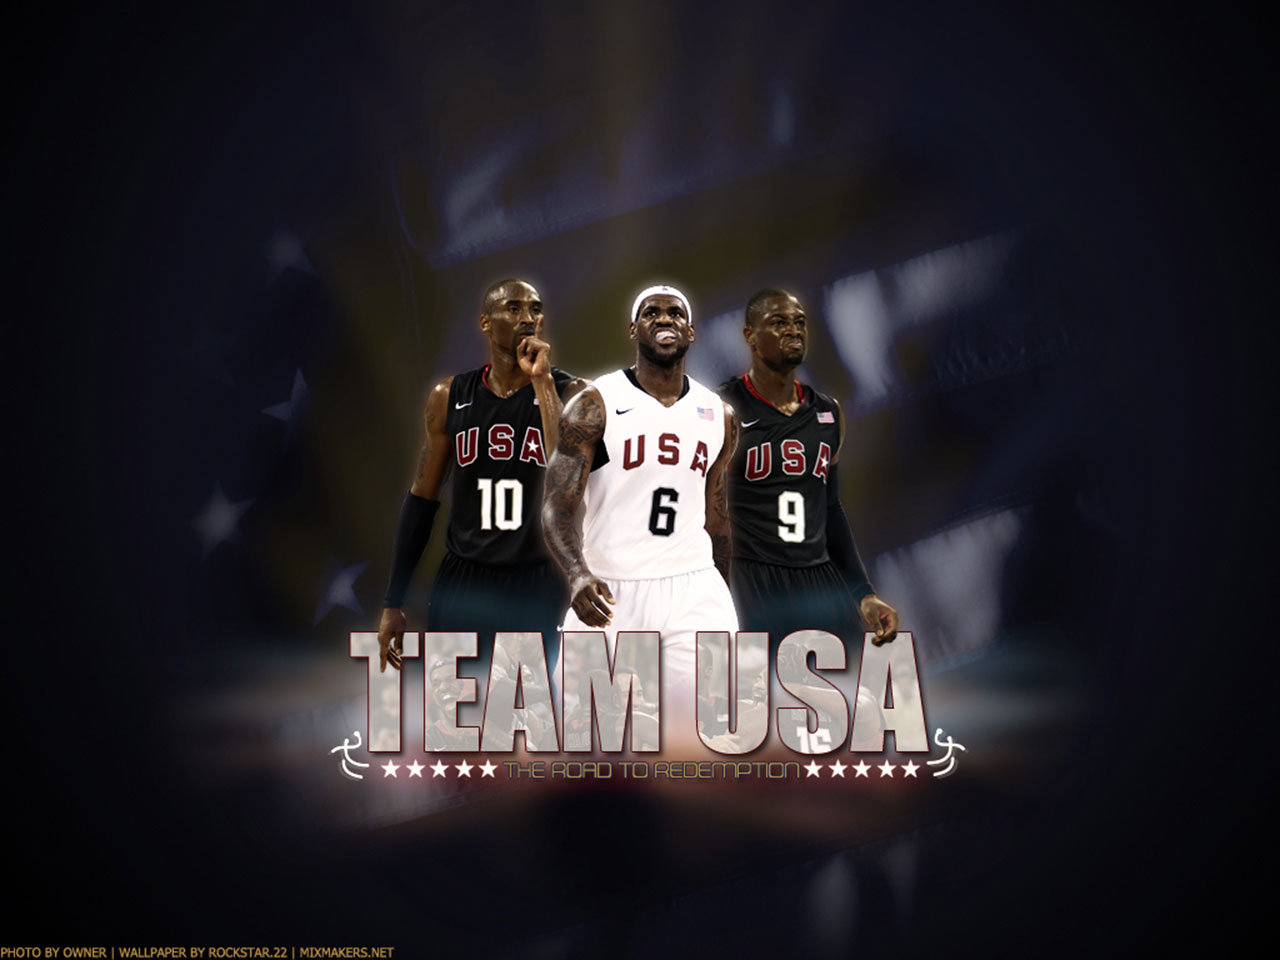 lebron james usa team